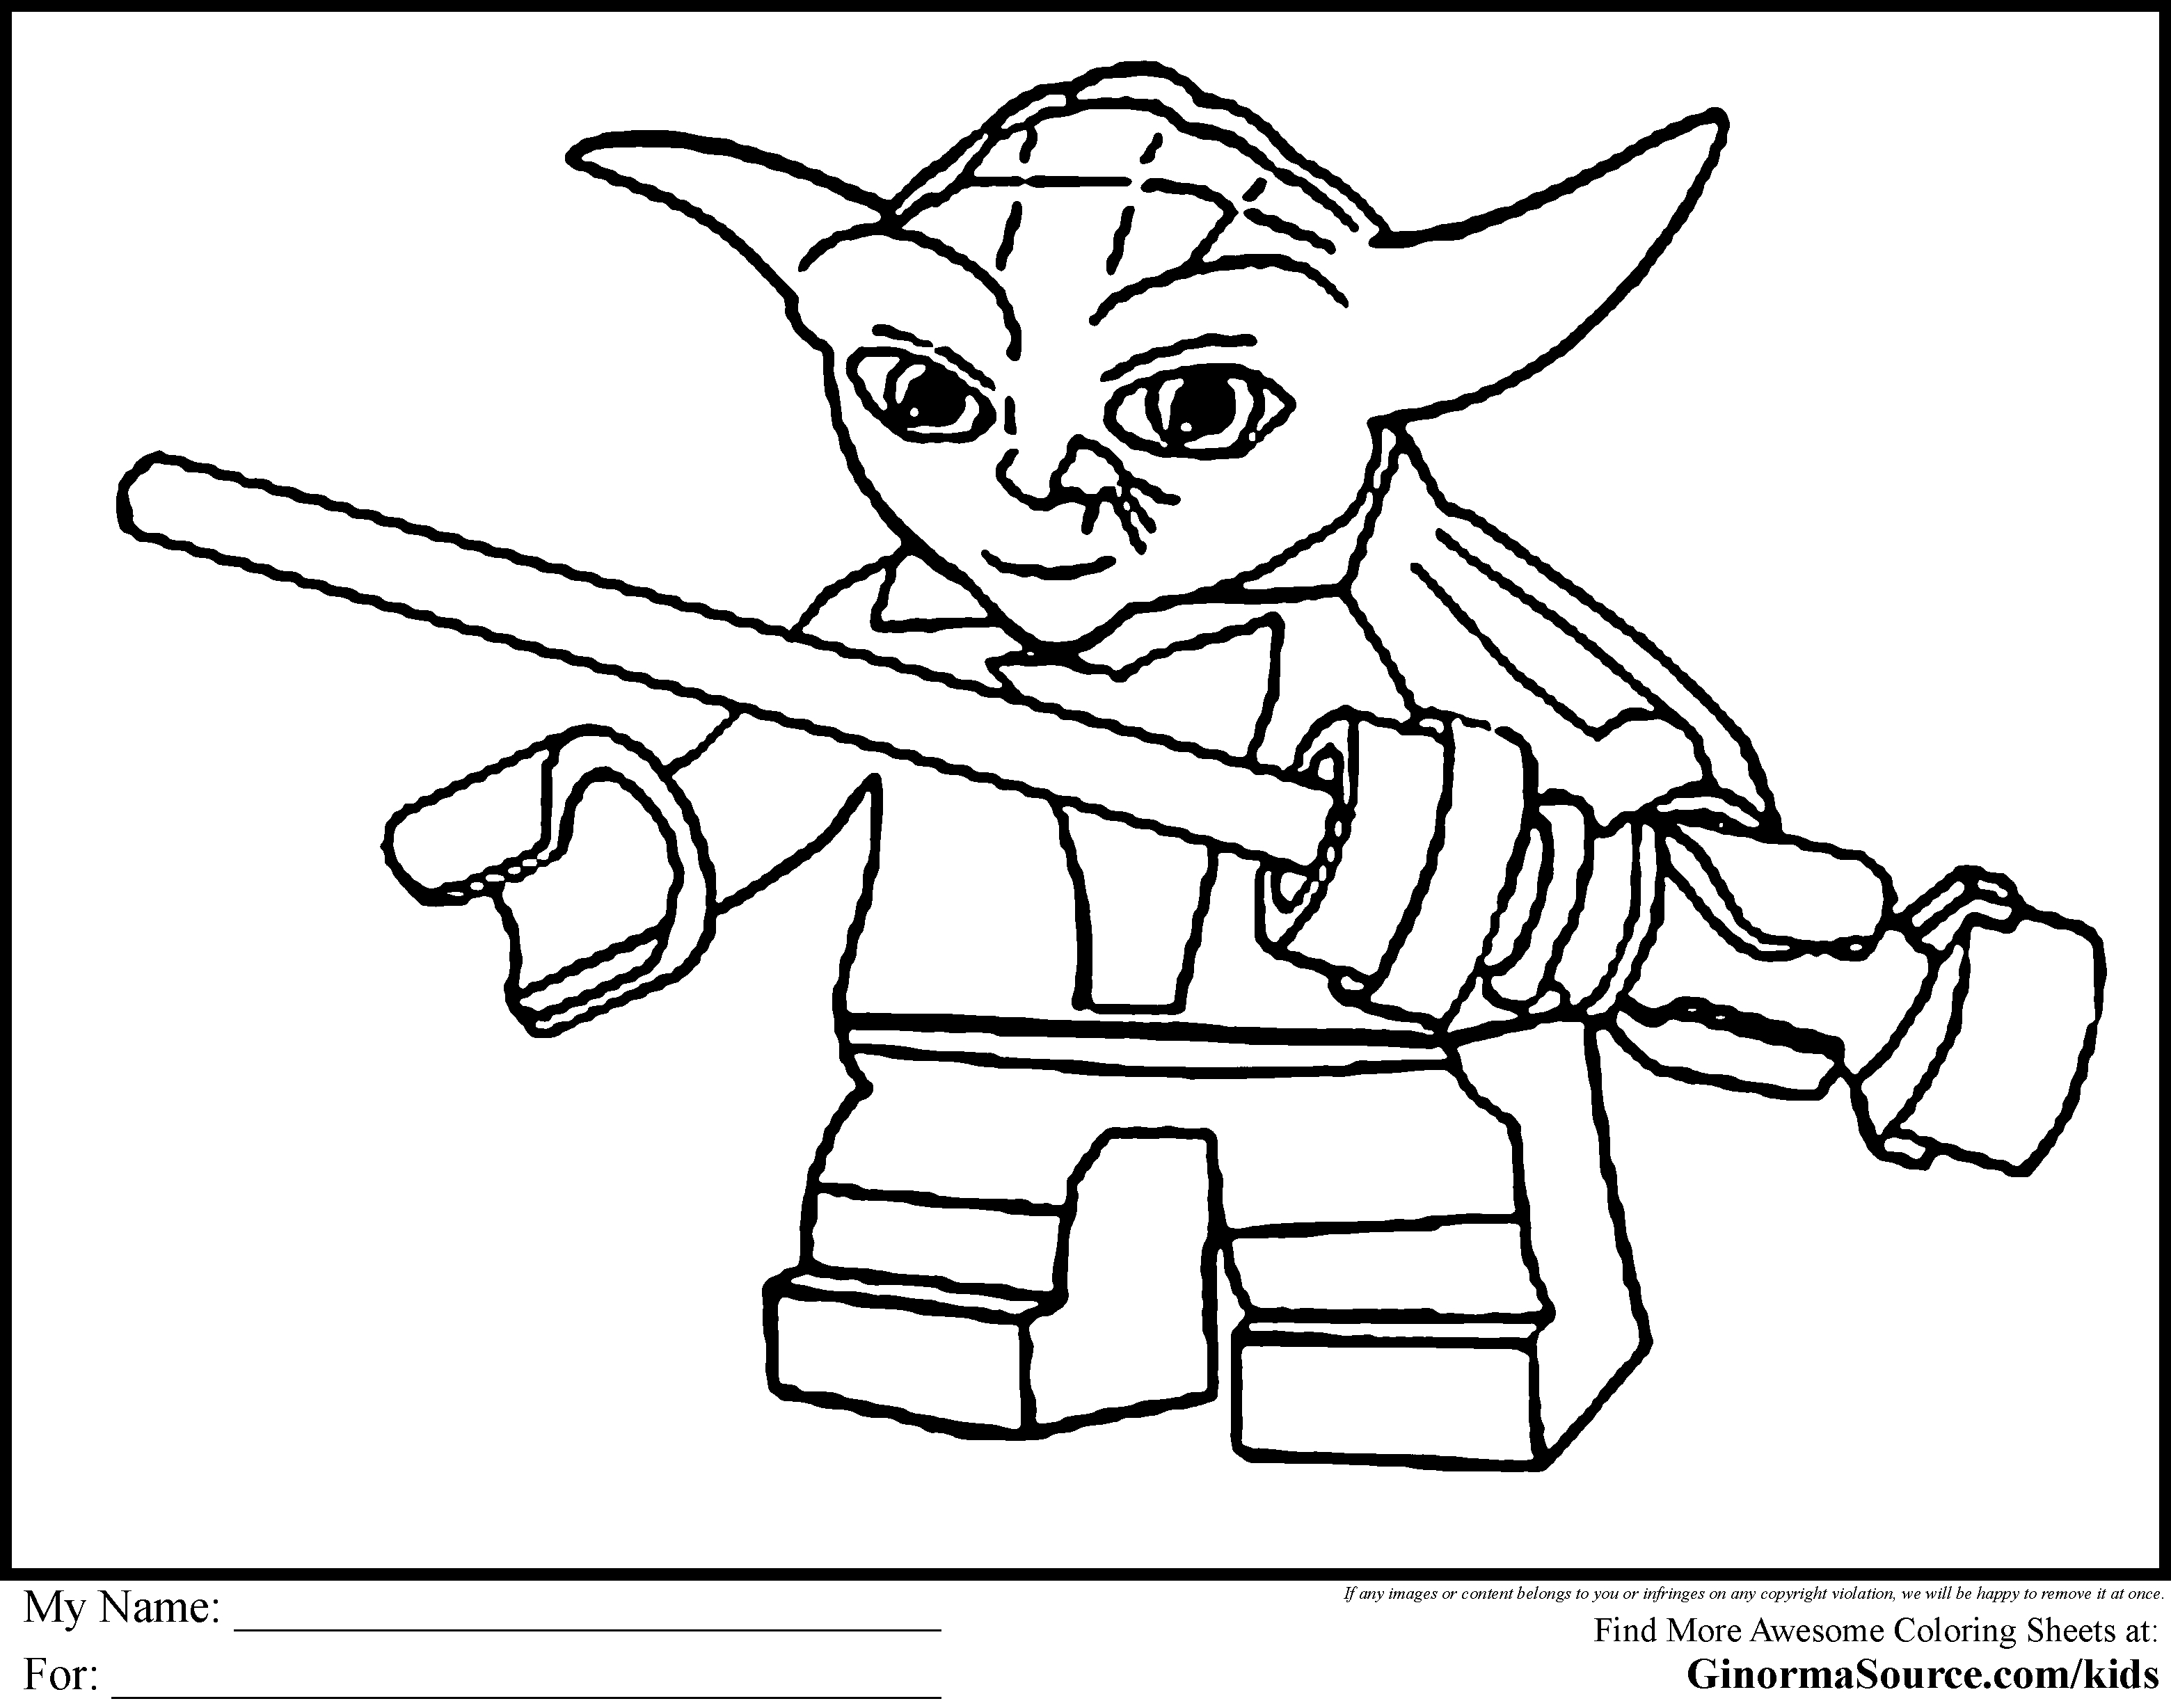 Star Wars Color Pages Star Wars Coloring Pages Leia At Getdrawings Free For Personal